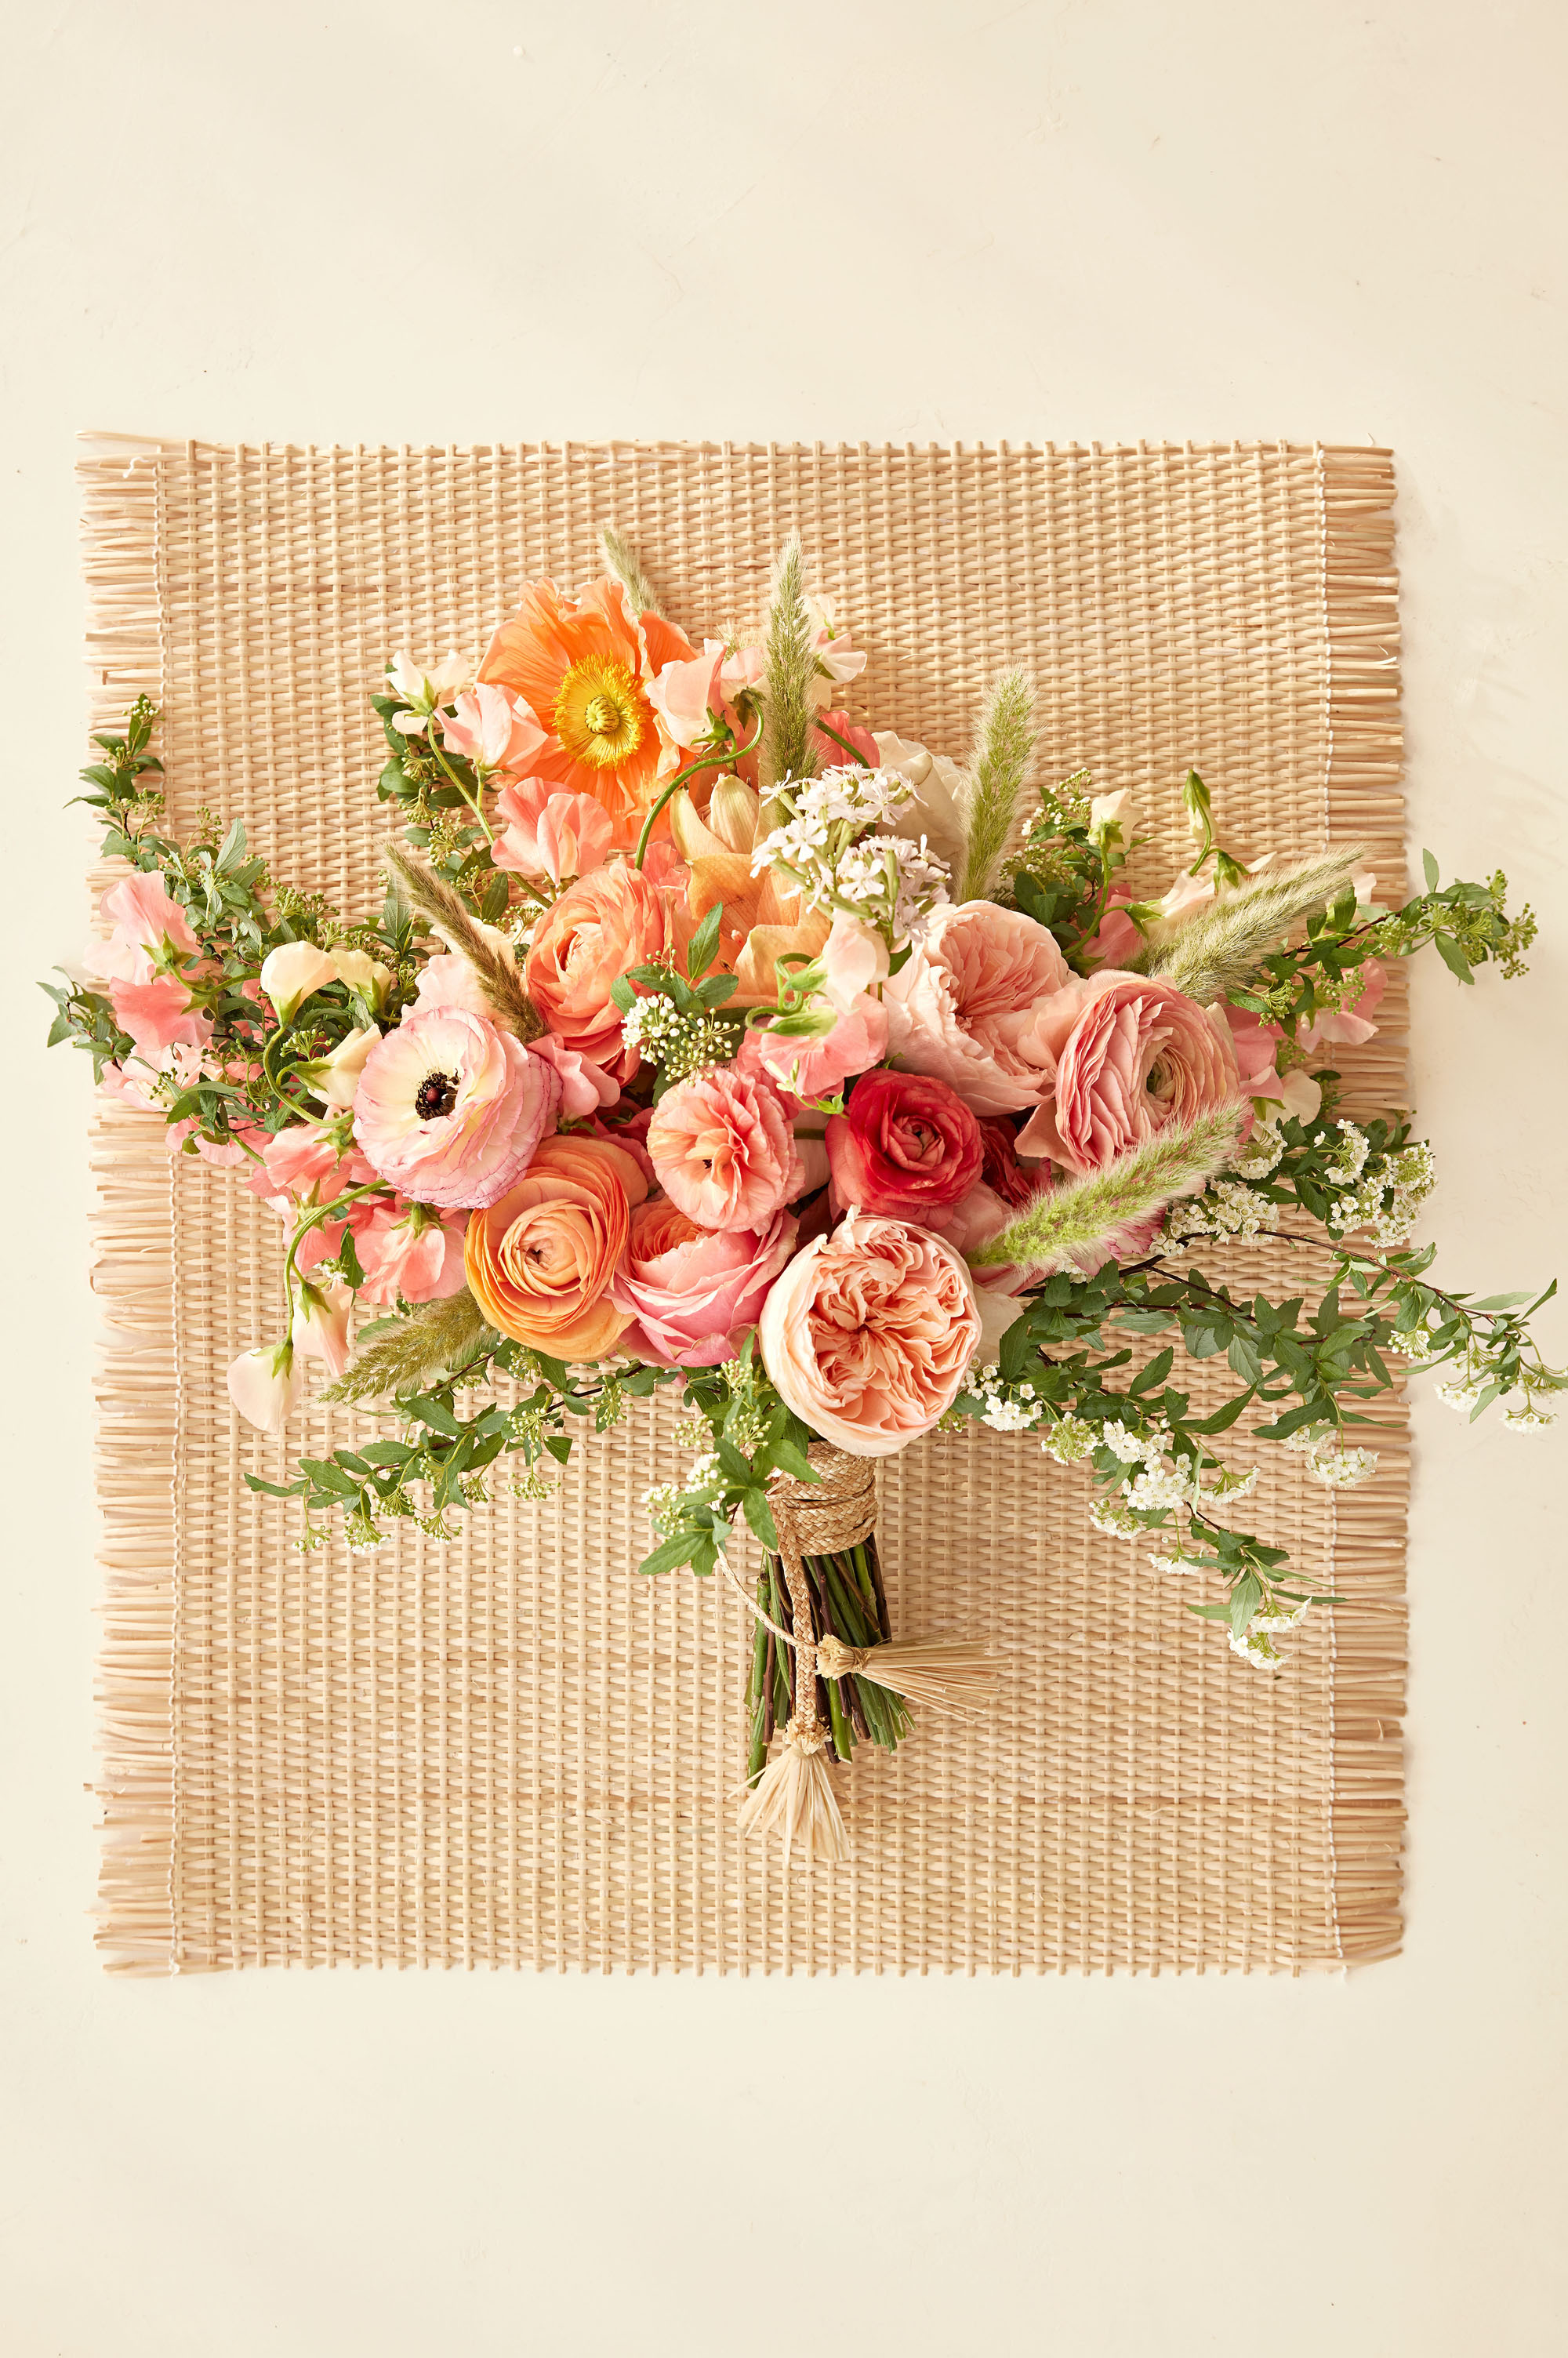 bouquet on raffia mat woven